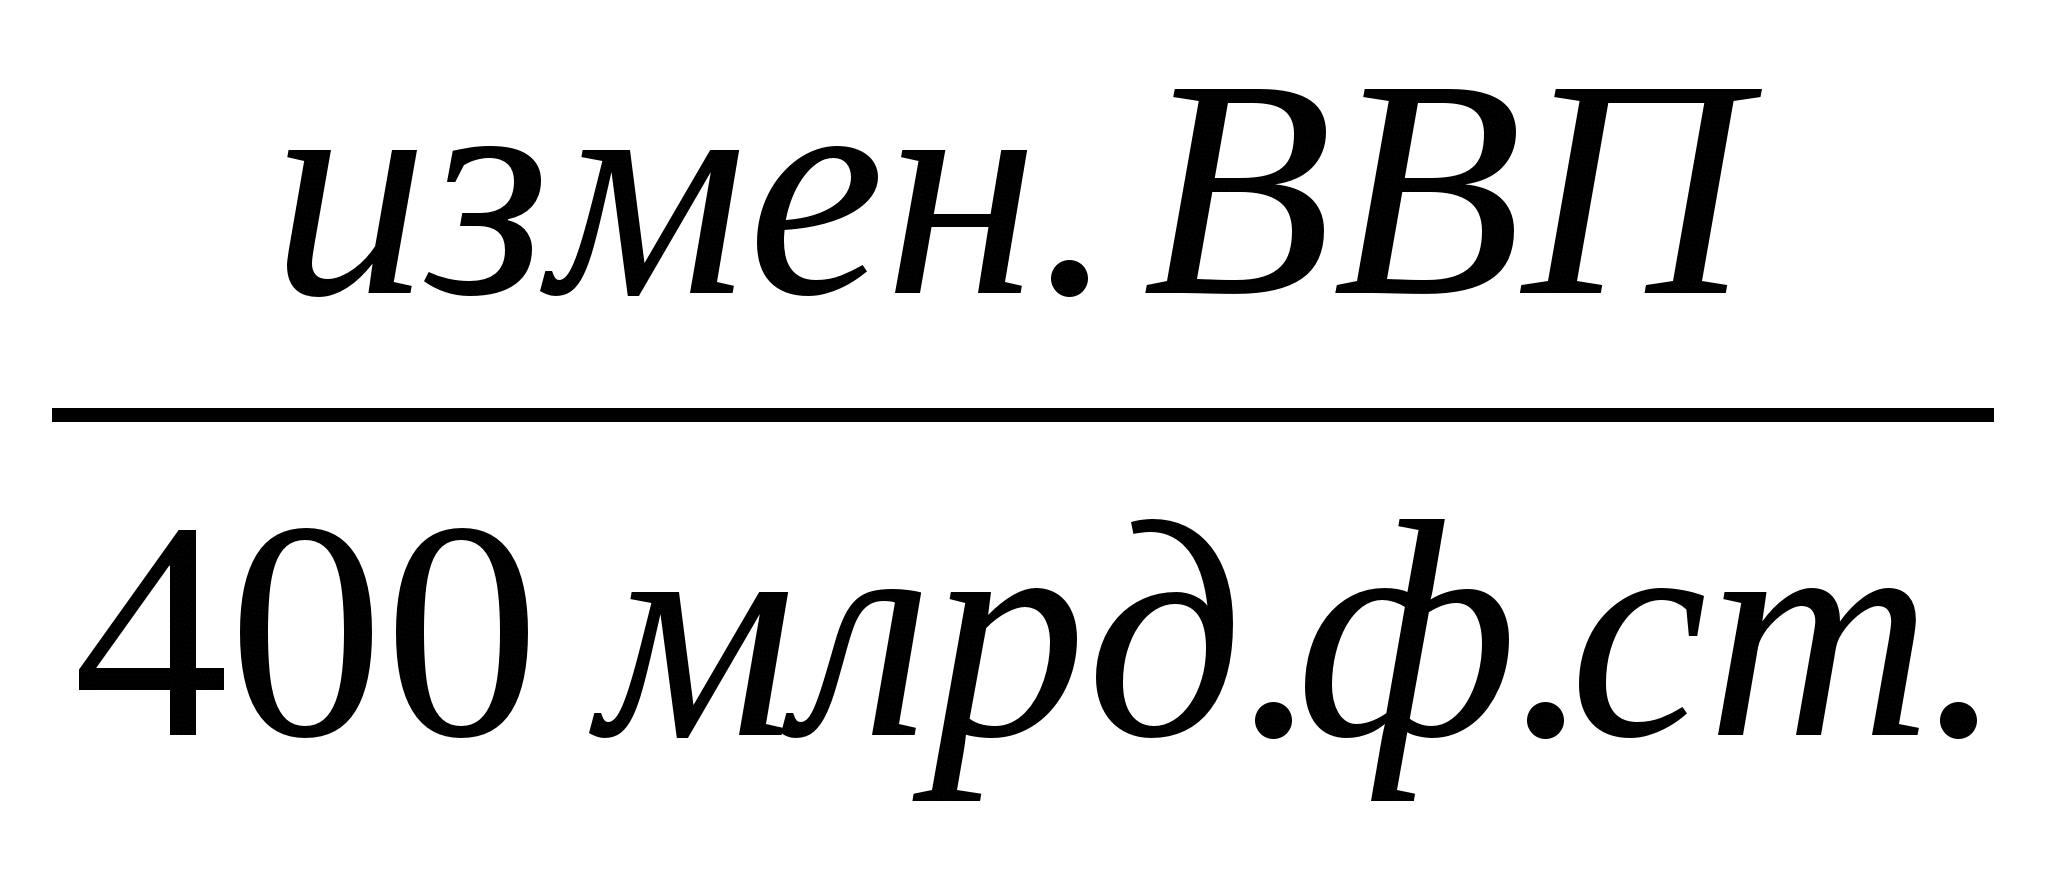 hello_html_m348df71a.png